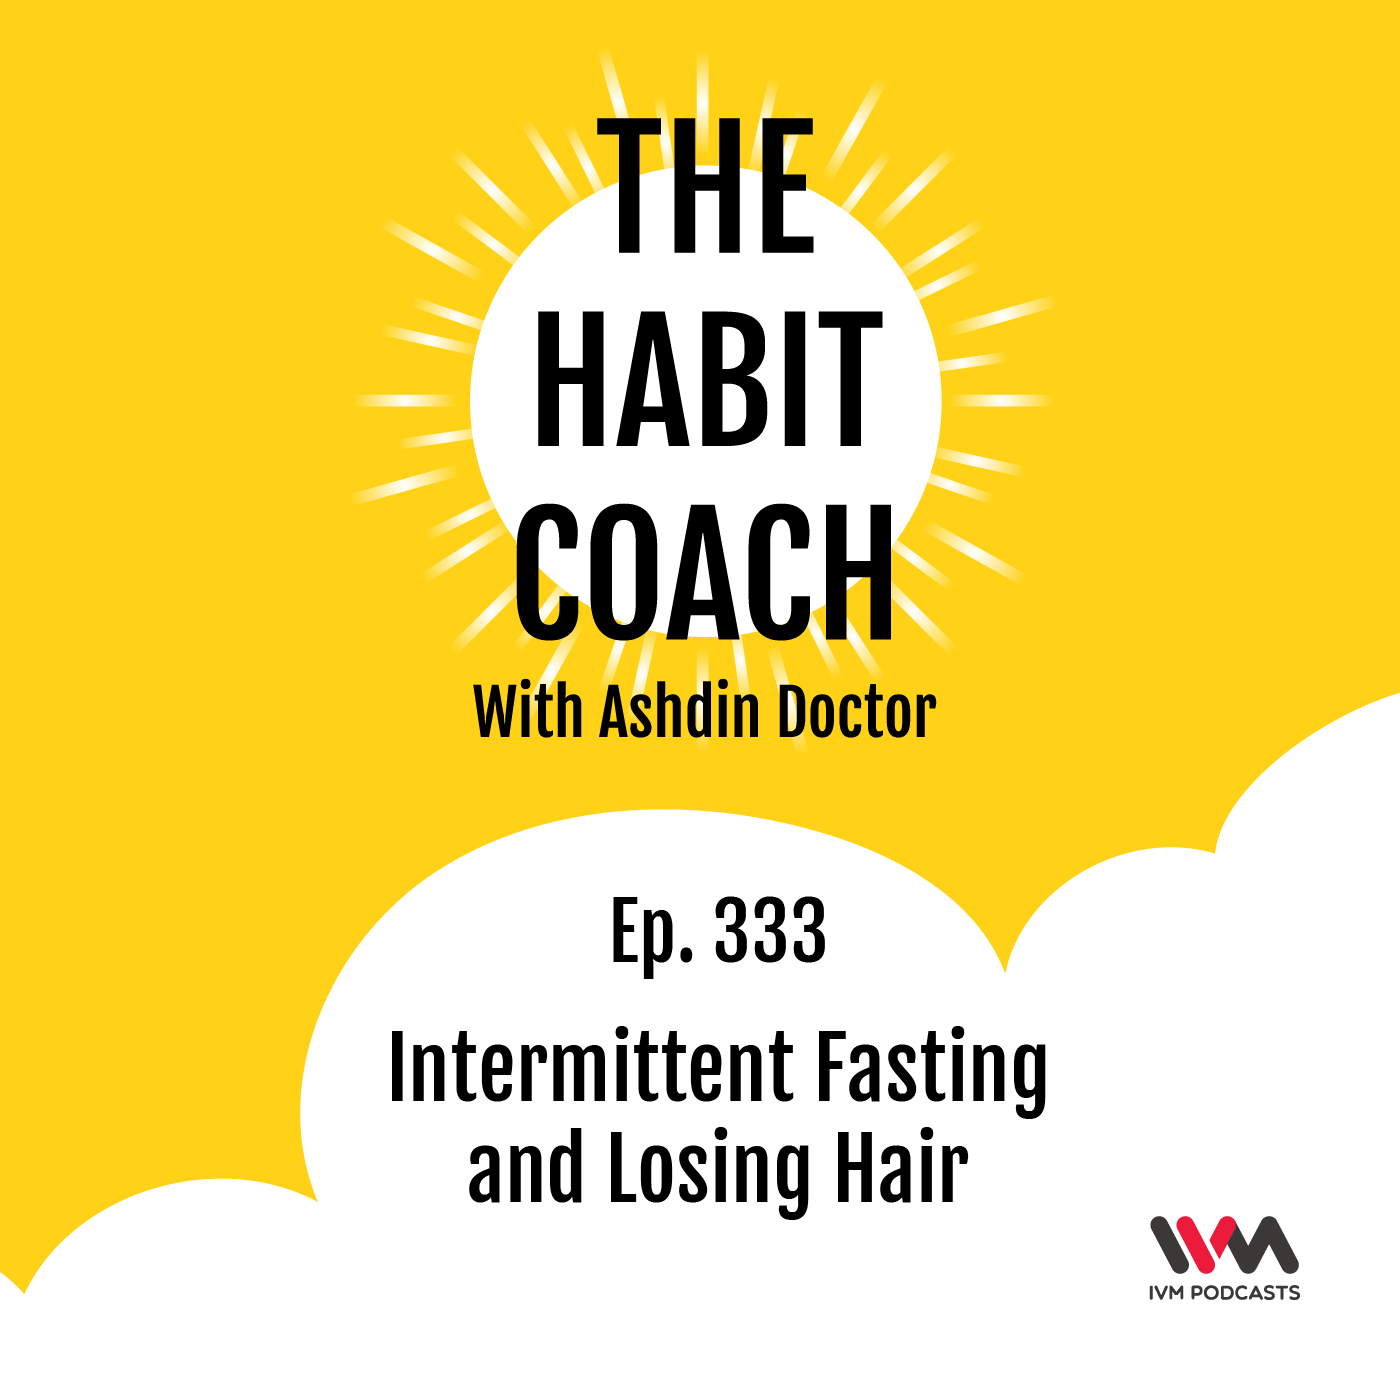 Ep. 333: Intermittent Fasting and Losing Hair